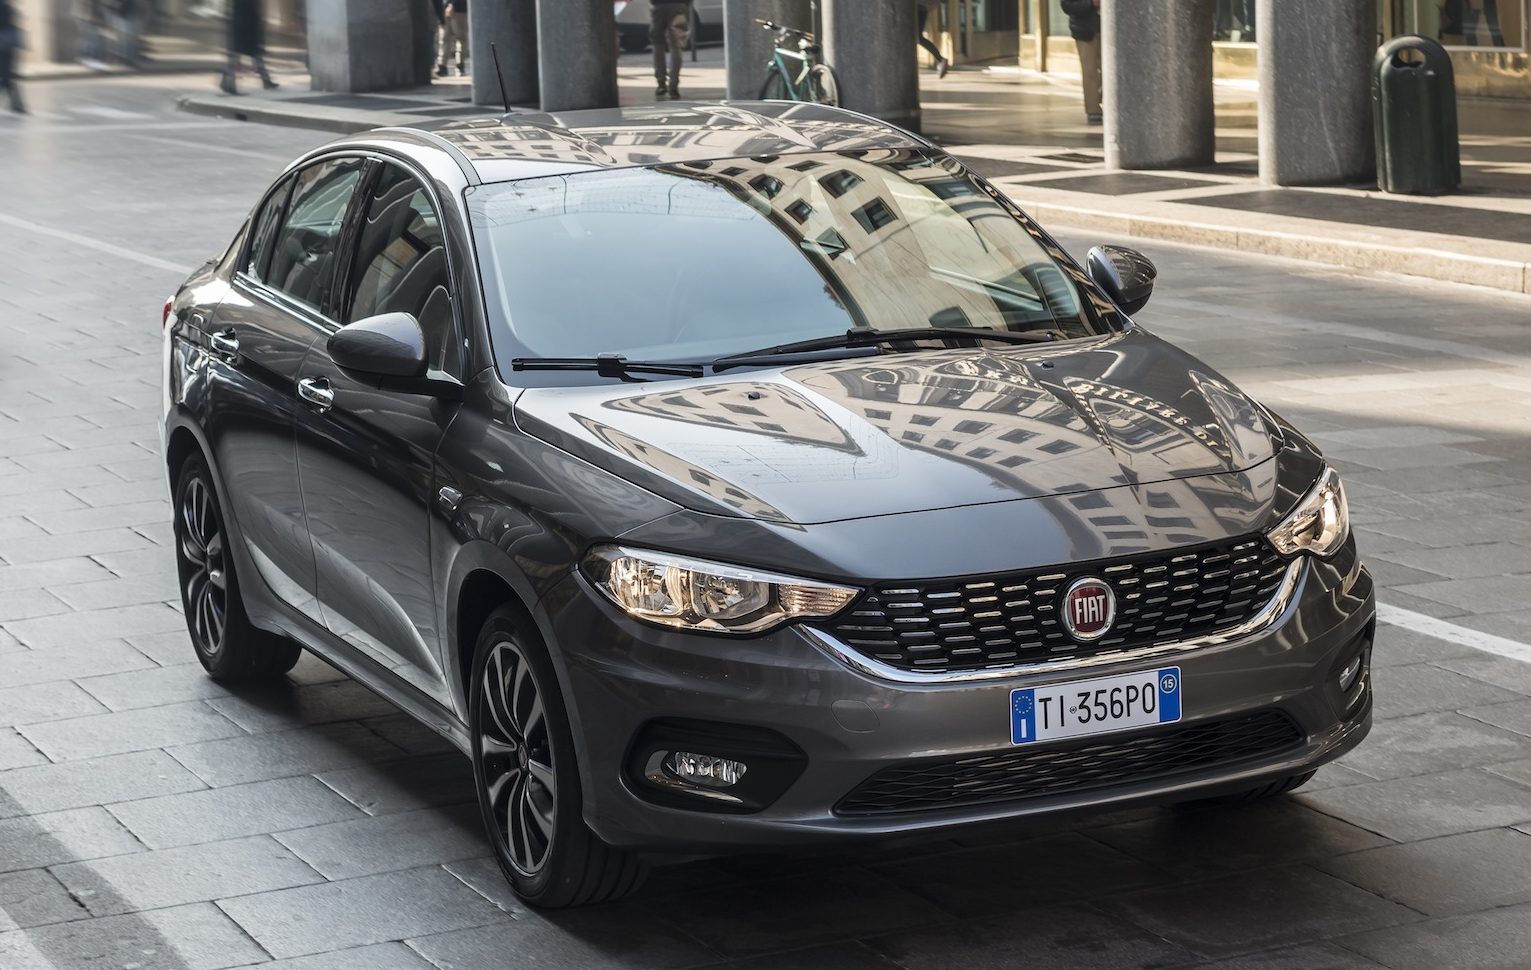 fiat tipo 1 6 multijet 120 cv test su strada. Black Bedroom Furniture Sets. Home Design Ideas